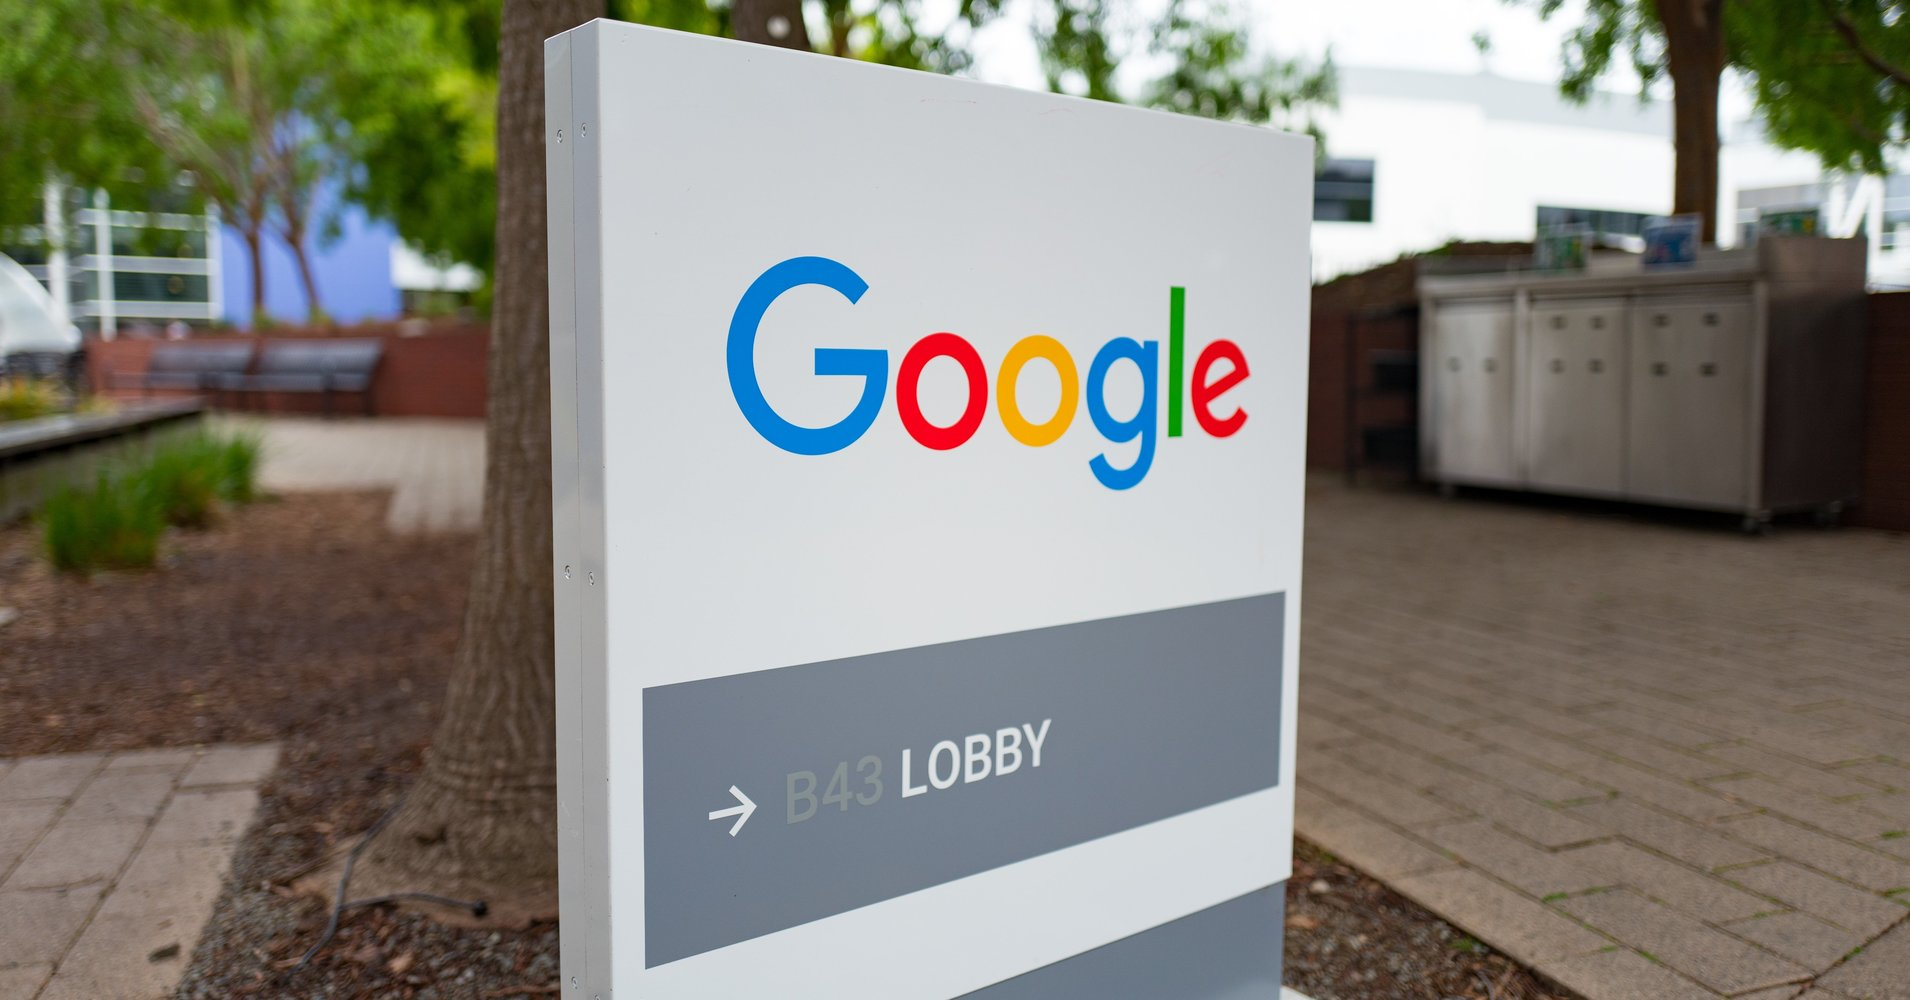 Ex-Google employees sue tech giant for systematic gender pay discrimination https://t.co/ZvENmDvzwF https://t.co/YhkWn0EQR9